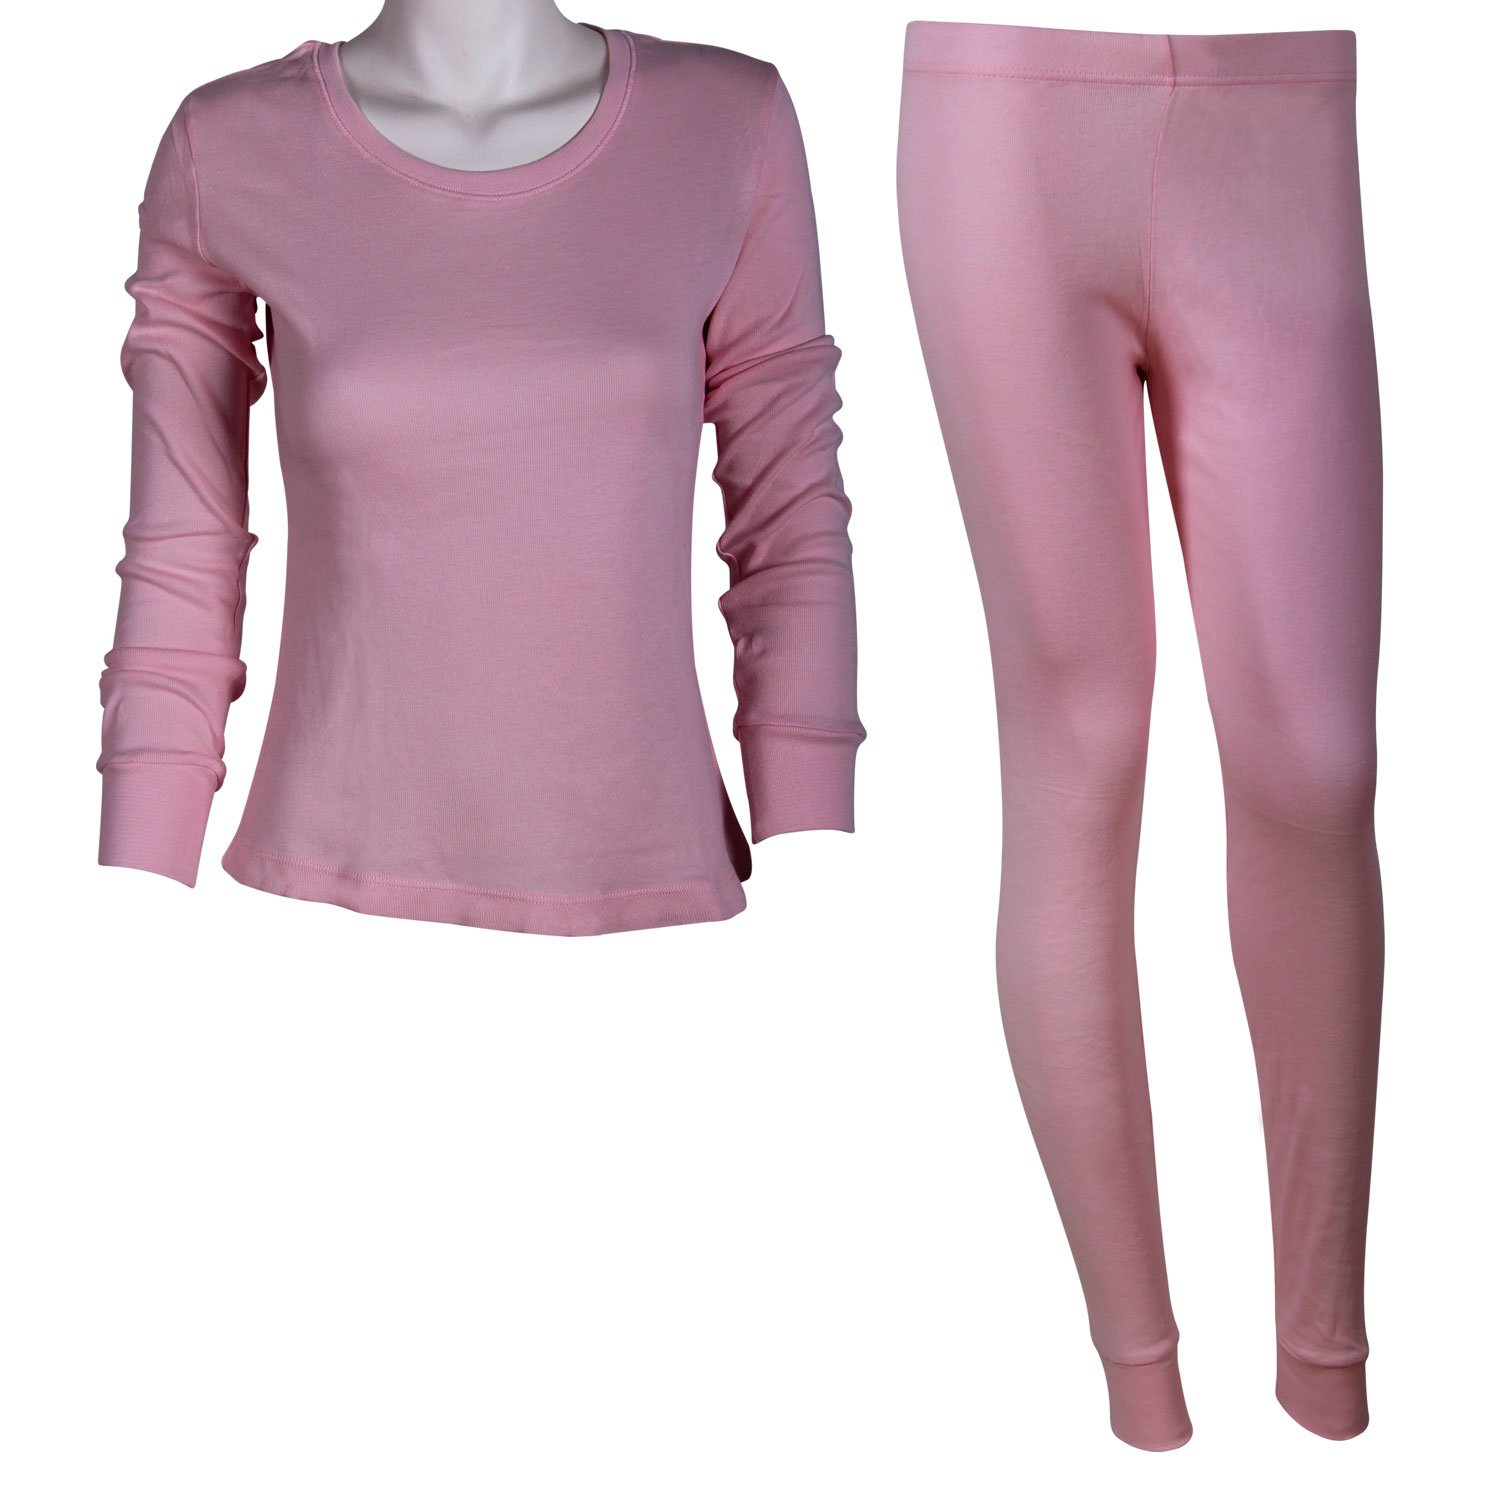 Godsen Women's Light Weight Cotton Thermal Underwear Set Crewneck Top & Bottoms XS-L 85201802